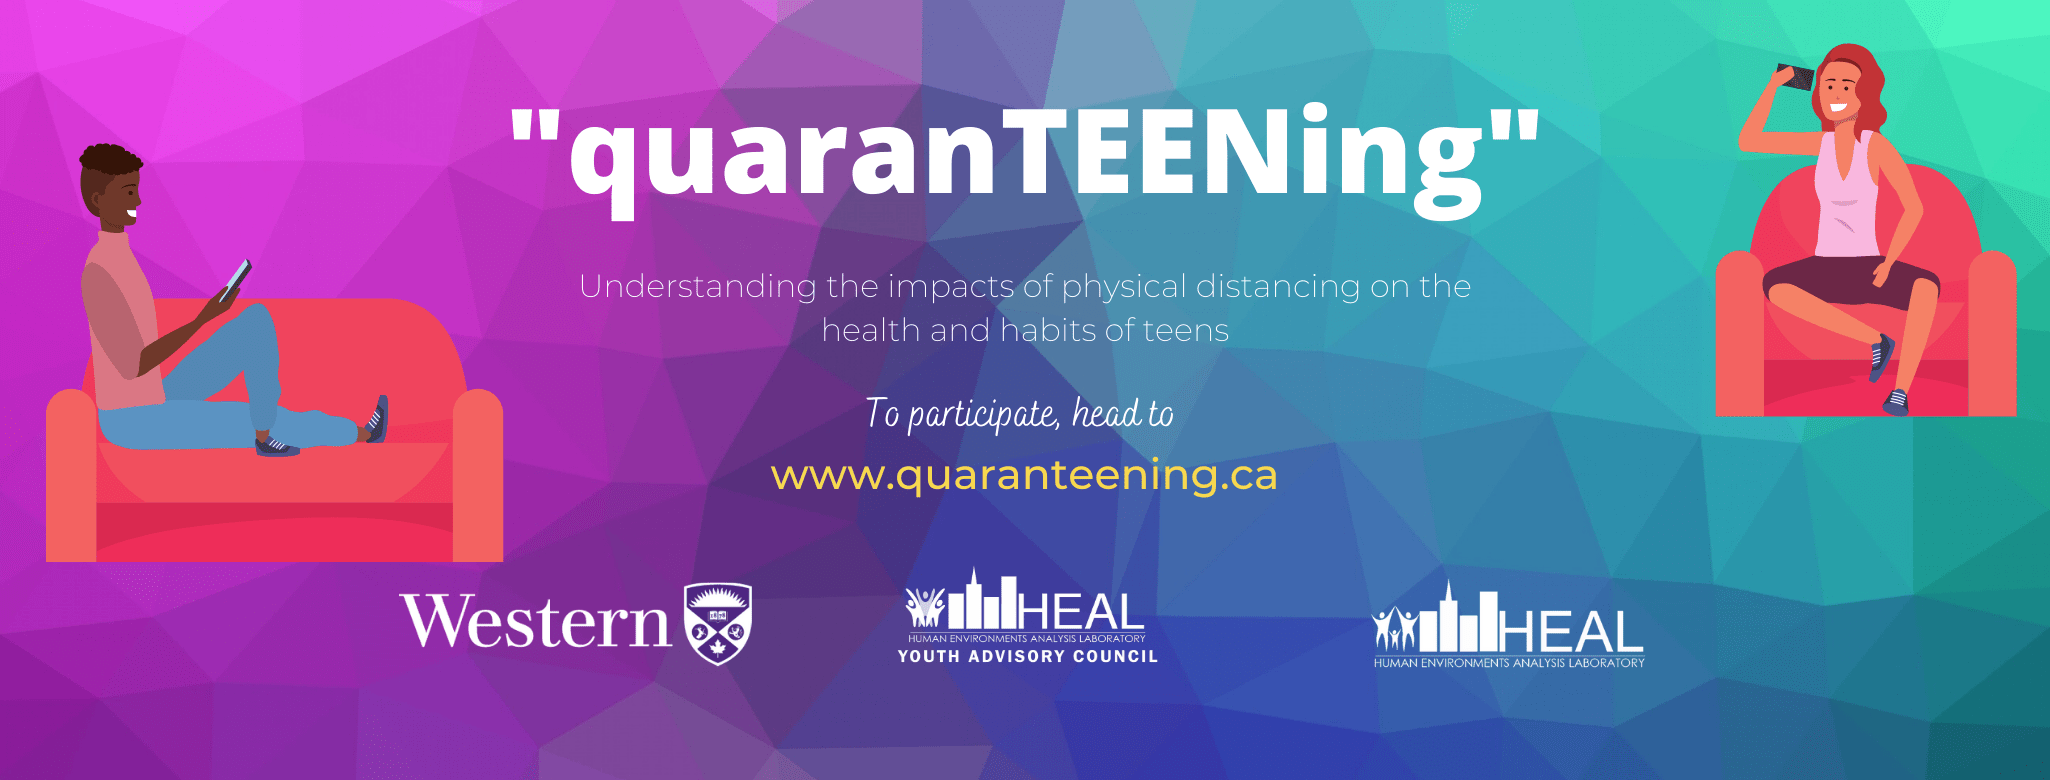 QuaranTEENing: Understanding The Impacts of Physical Distancing On The Health & Habits of Teens